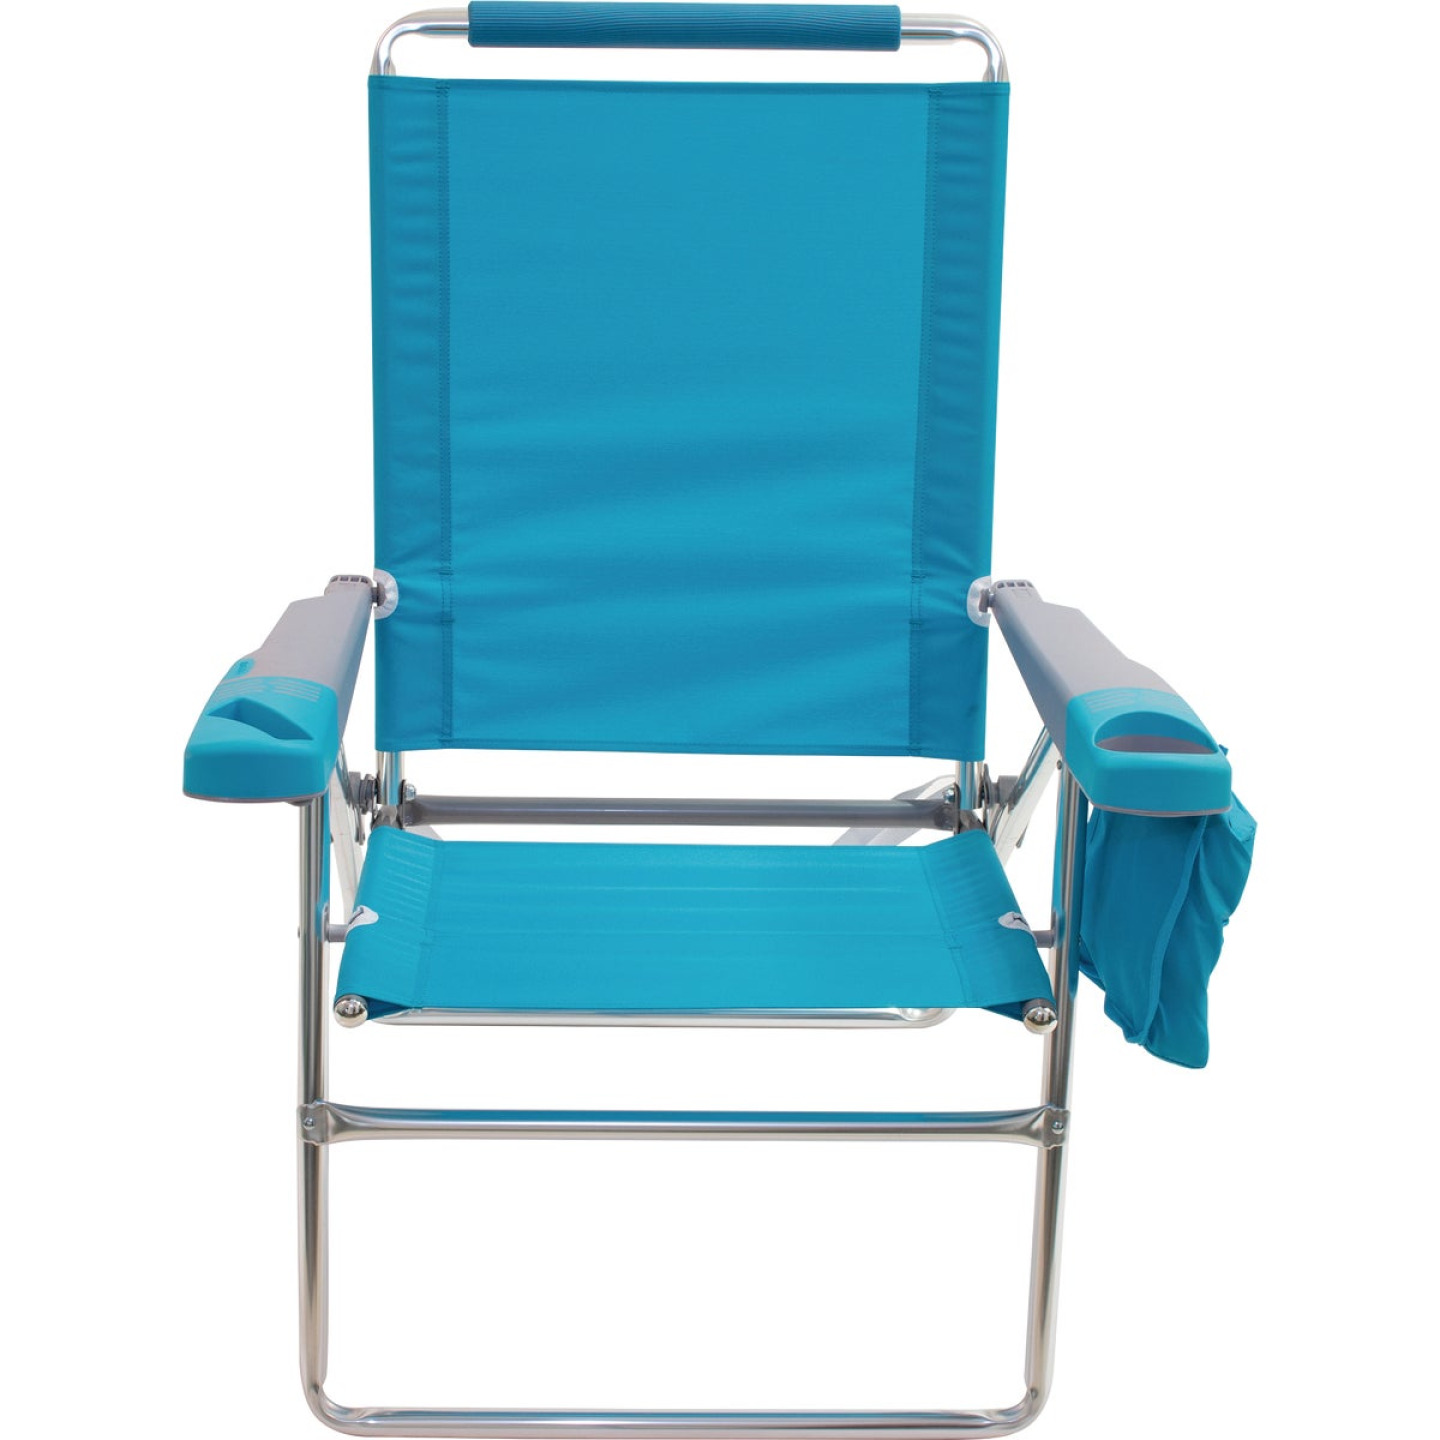 Rio Brands 4-Position Aluminum Folding Beach Chair with Cooler Image 5